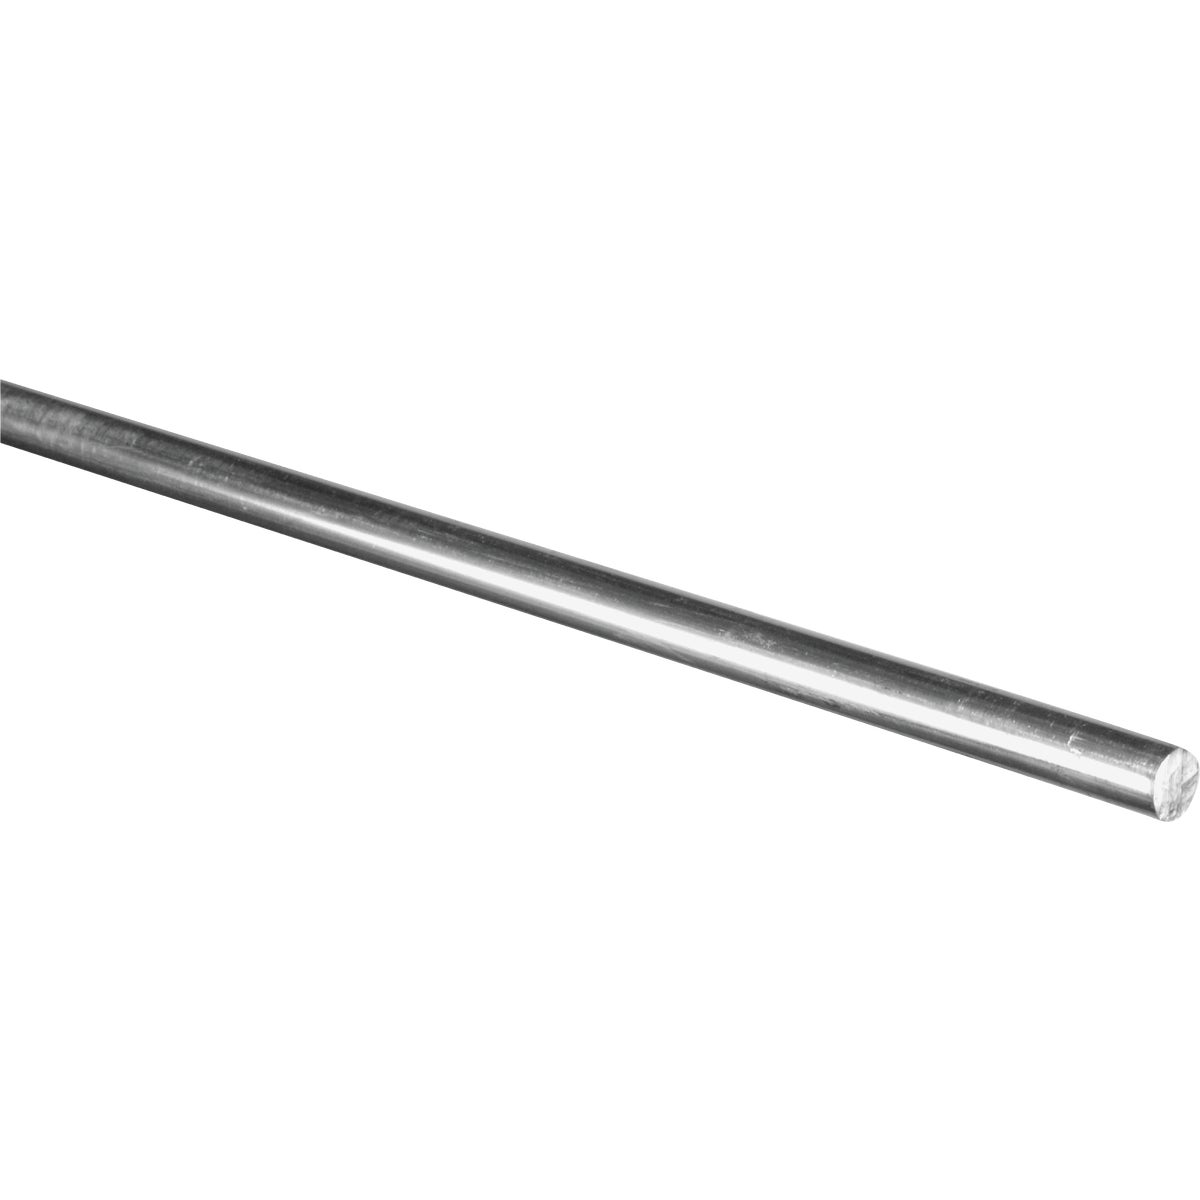 3/8X3' SOLID ROUND ROD - N342188 by National Mfg Co